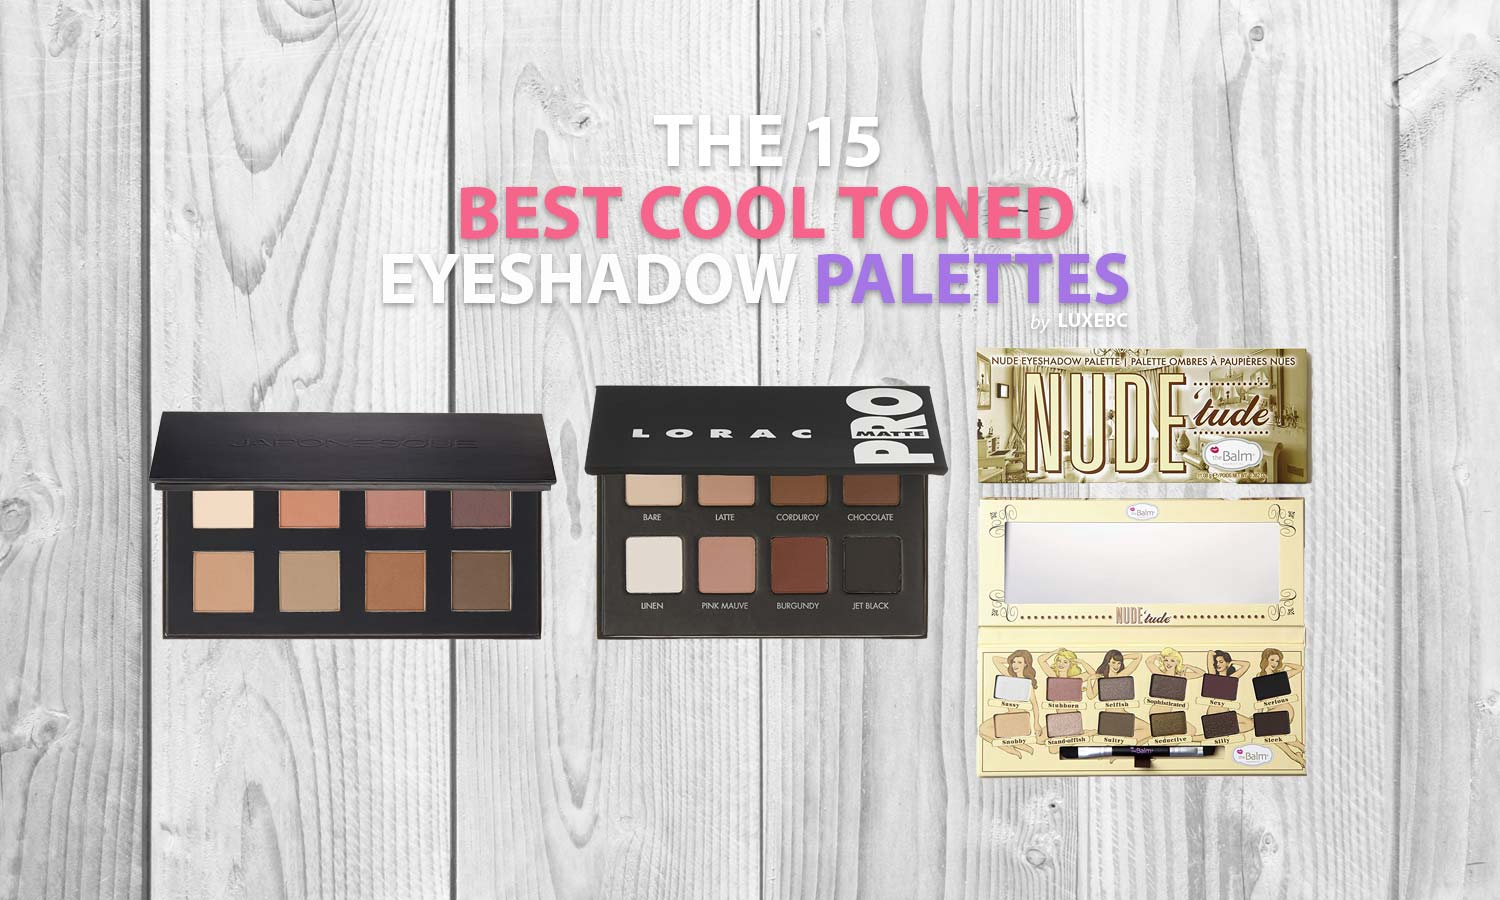 Cool toned eyeshadow palettes